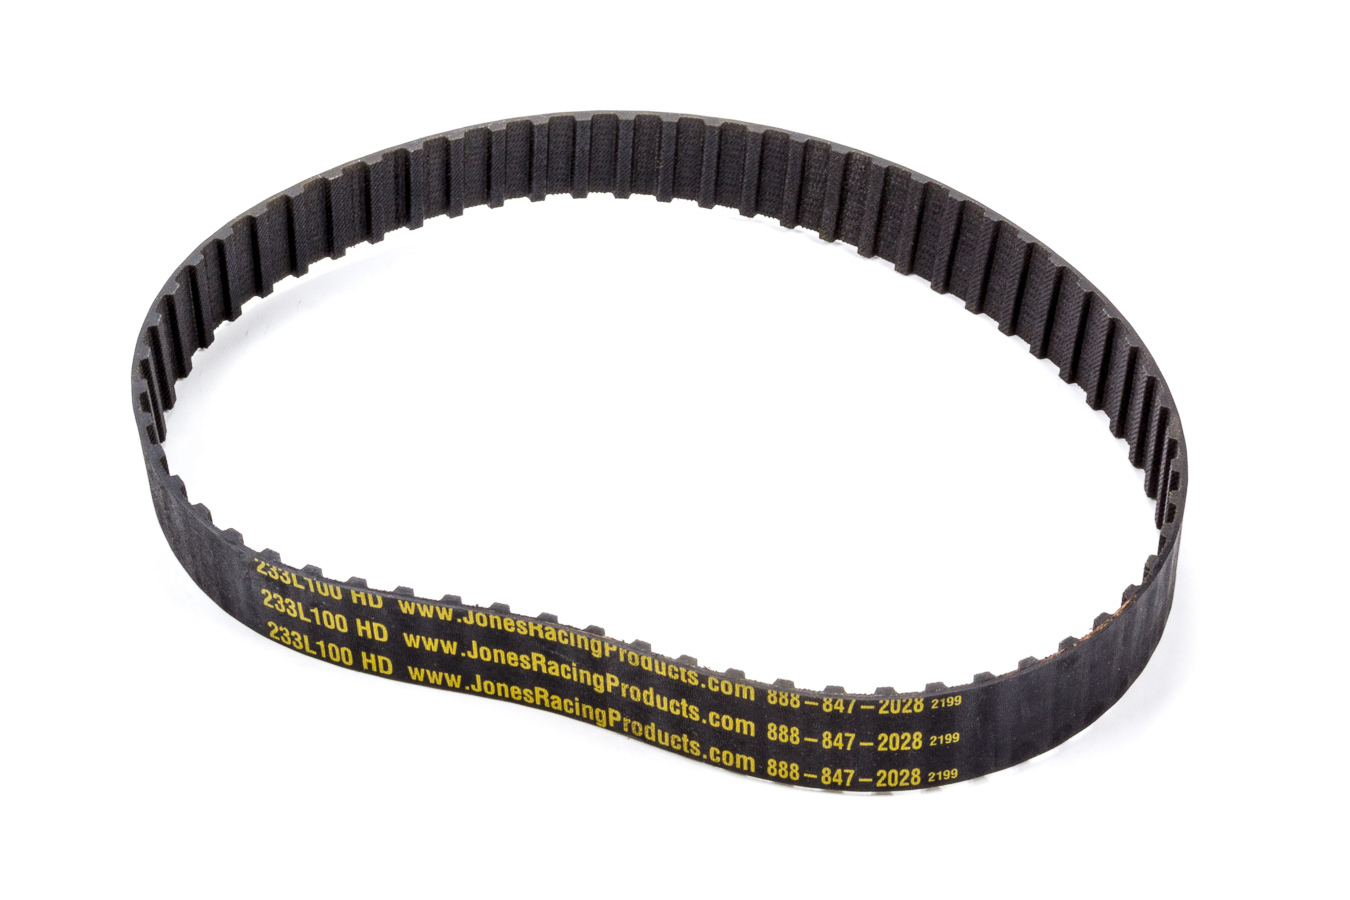 Jones Racing Products 233-L-100 Gilmer Drive Belt, 23.25 in Long, 1 in Wide, 3/8 in Pitch, Each